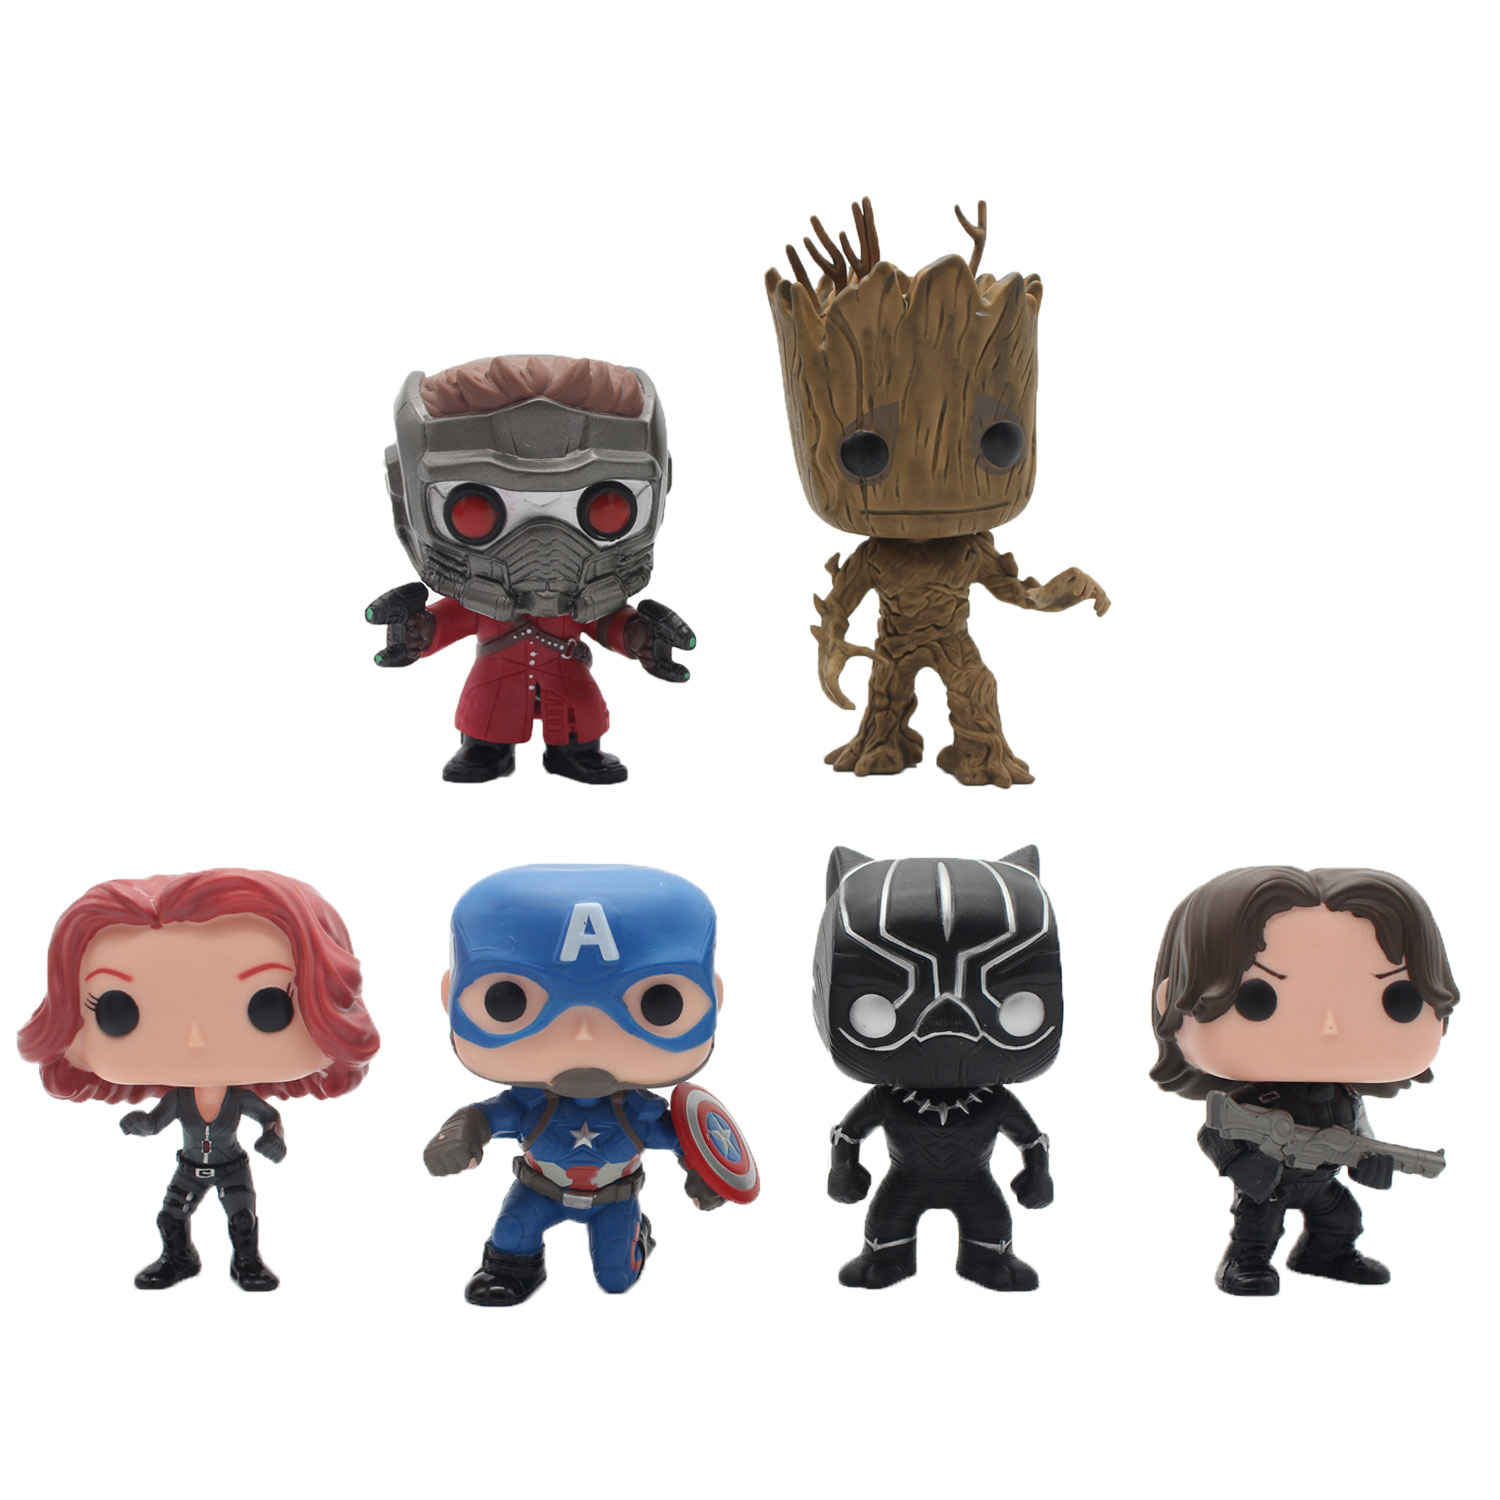 Chanycore Funko pop Groot Guardians of the Galaxy Avengers Captain America Black Widow Panther Winter Soldier Vinyl figure toy new funko pop guardians of the galaxy tree people groot